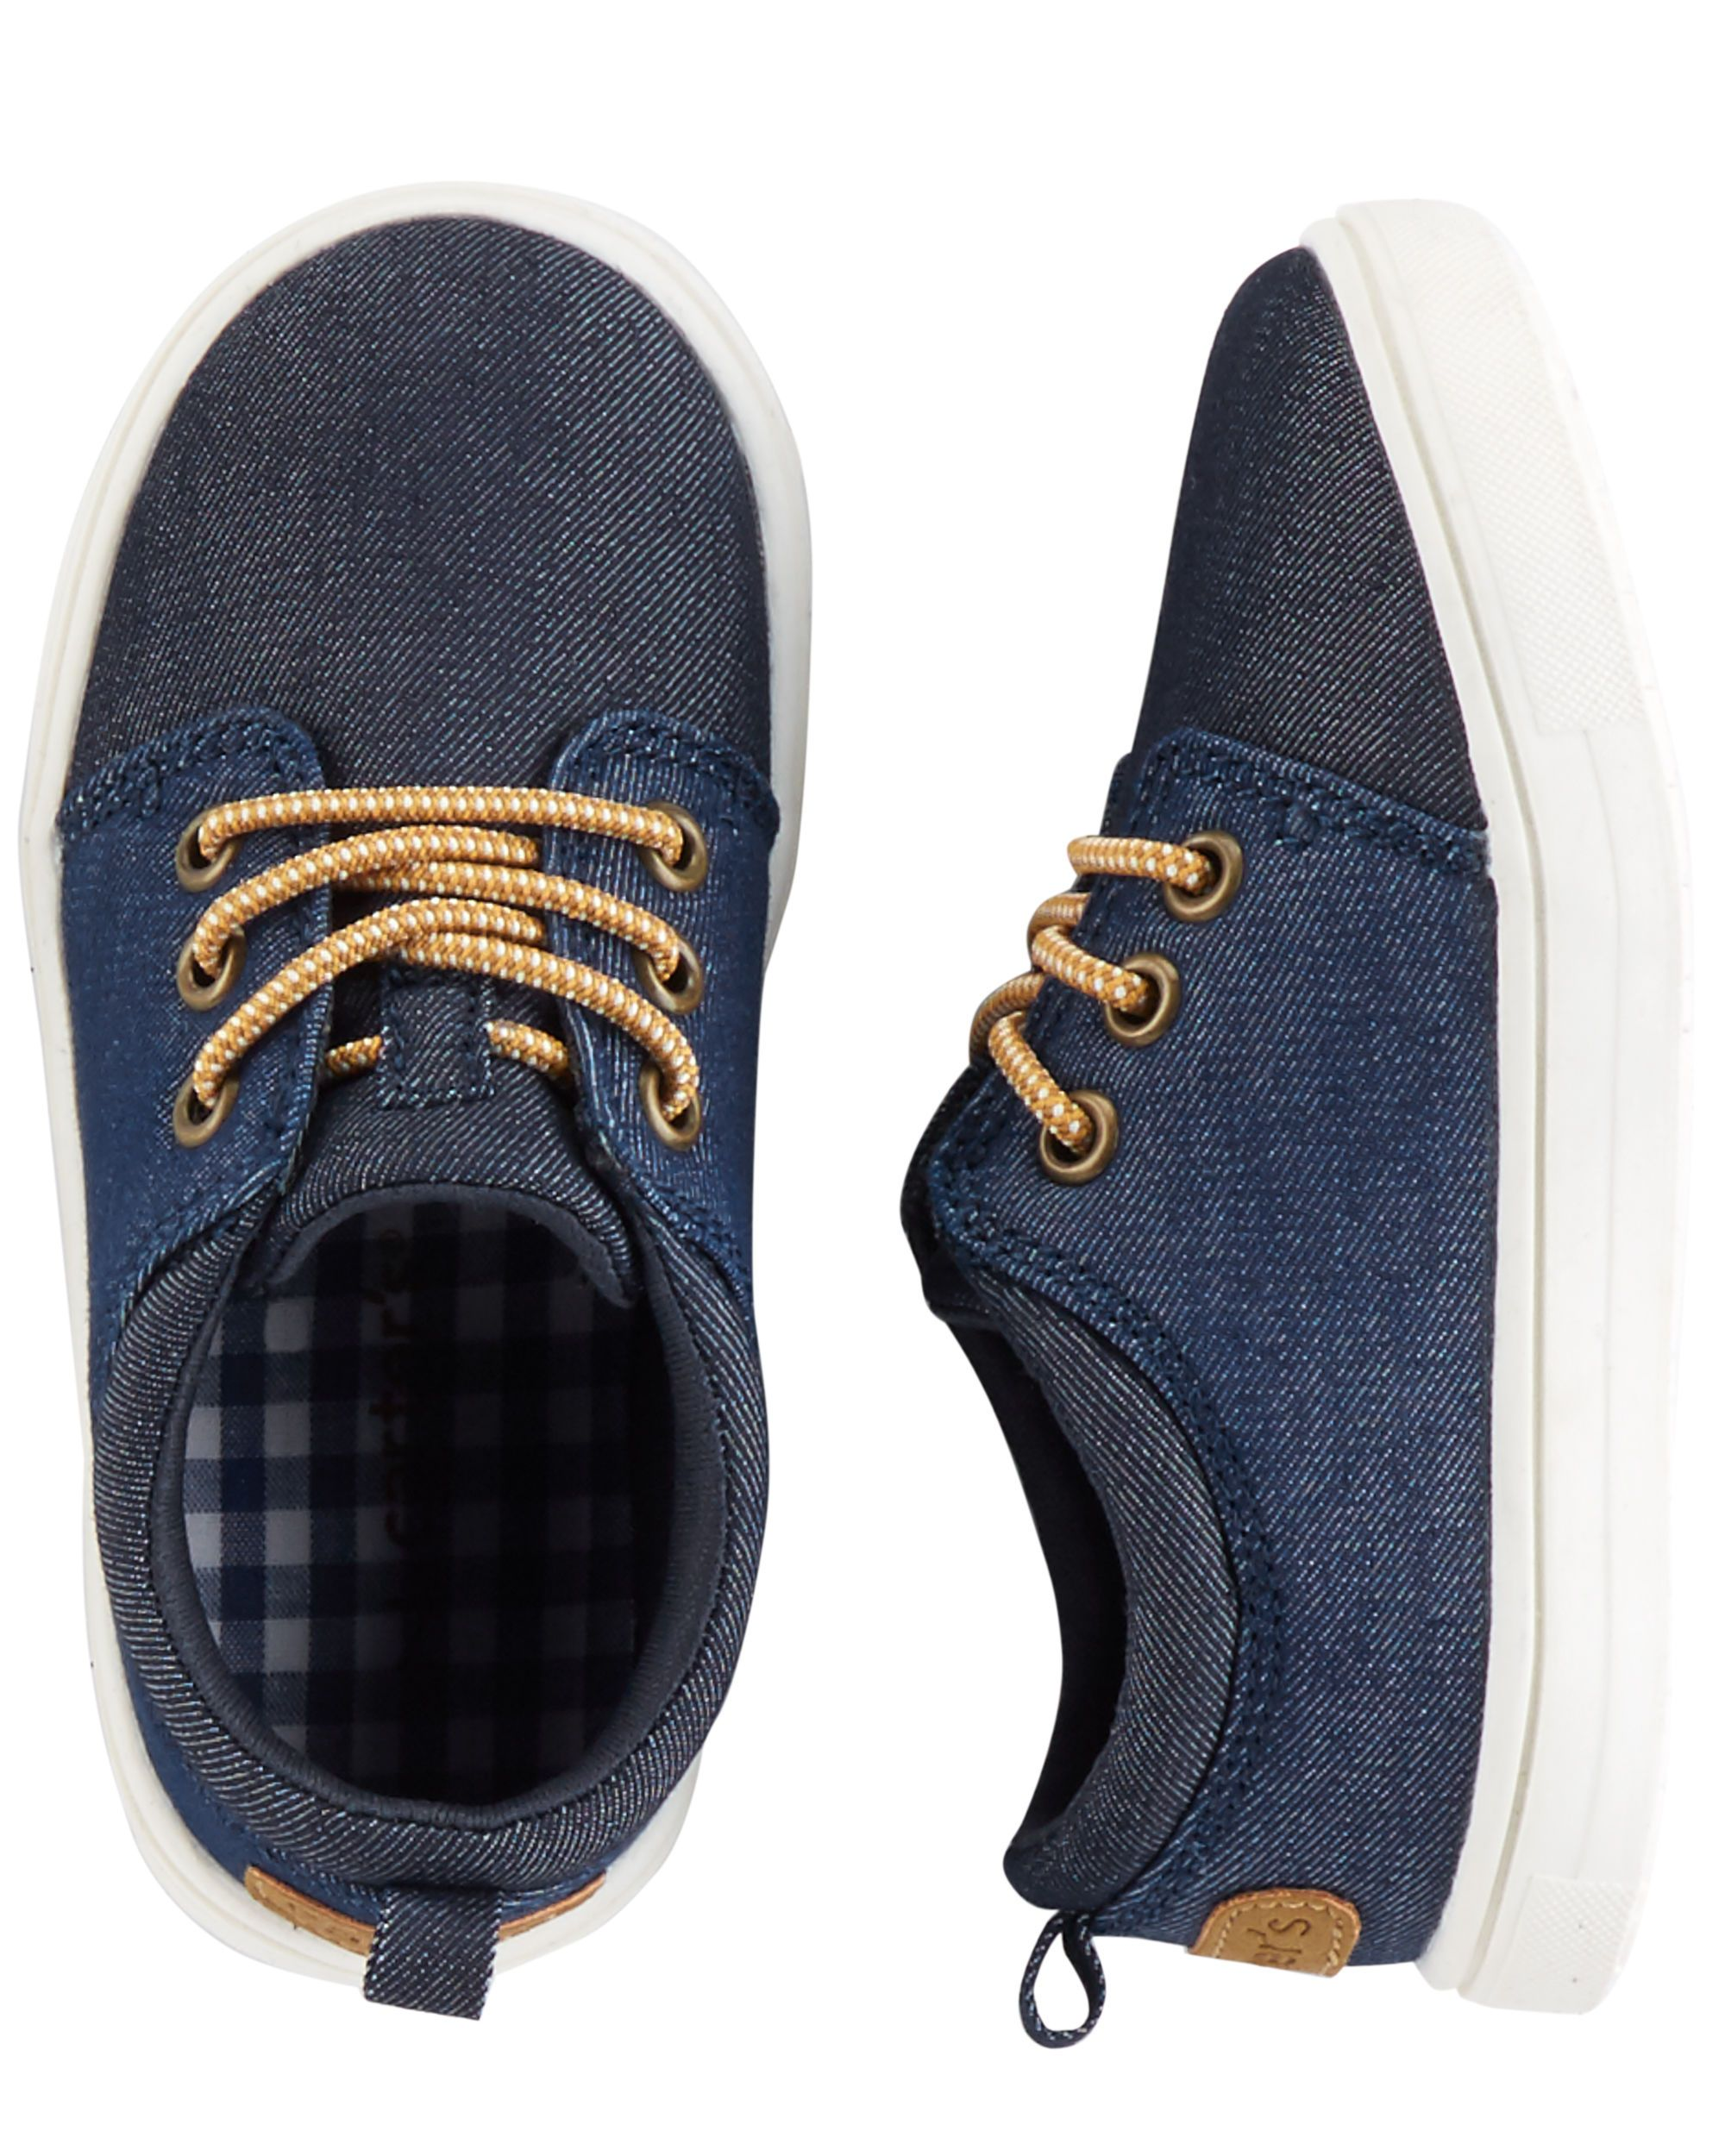 Carter's Denim Casual Sneakers | Boy shoes, Baby sneakers ...